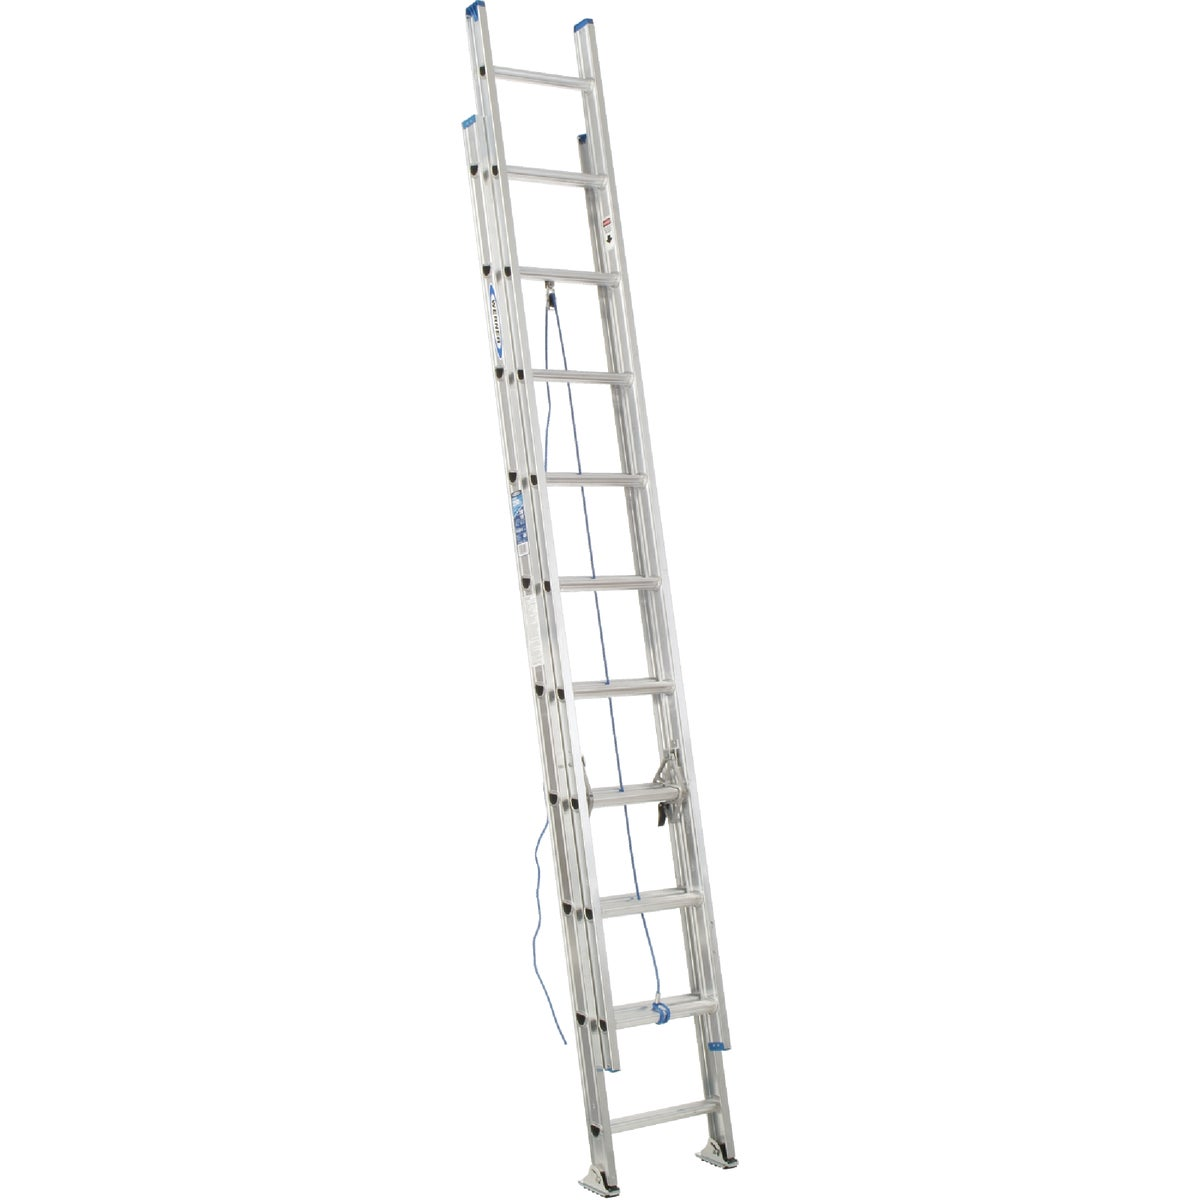 T-1 16' ALUM EXT LADDER - D1316-2 by Werner Ladder